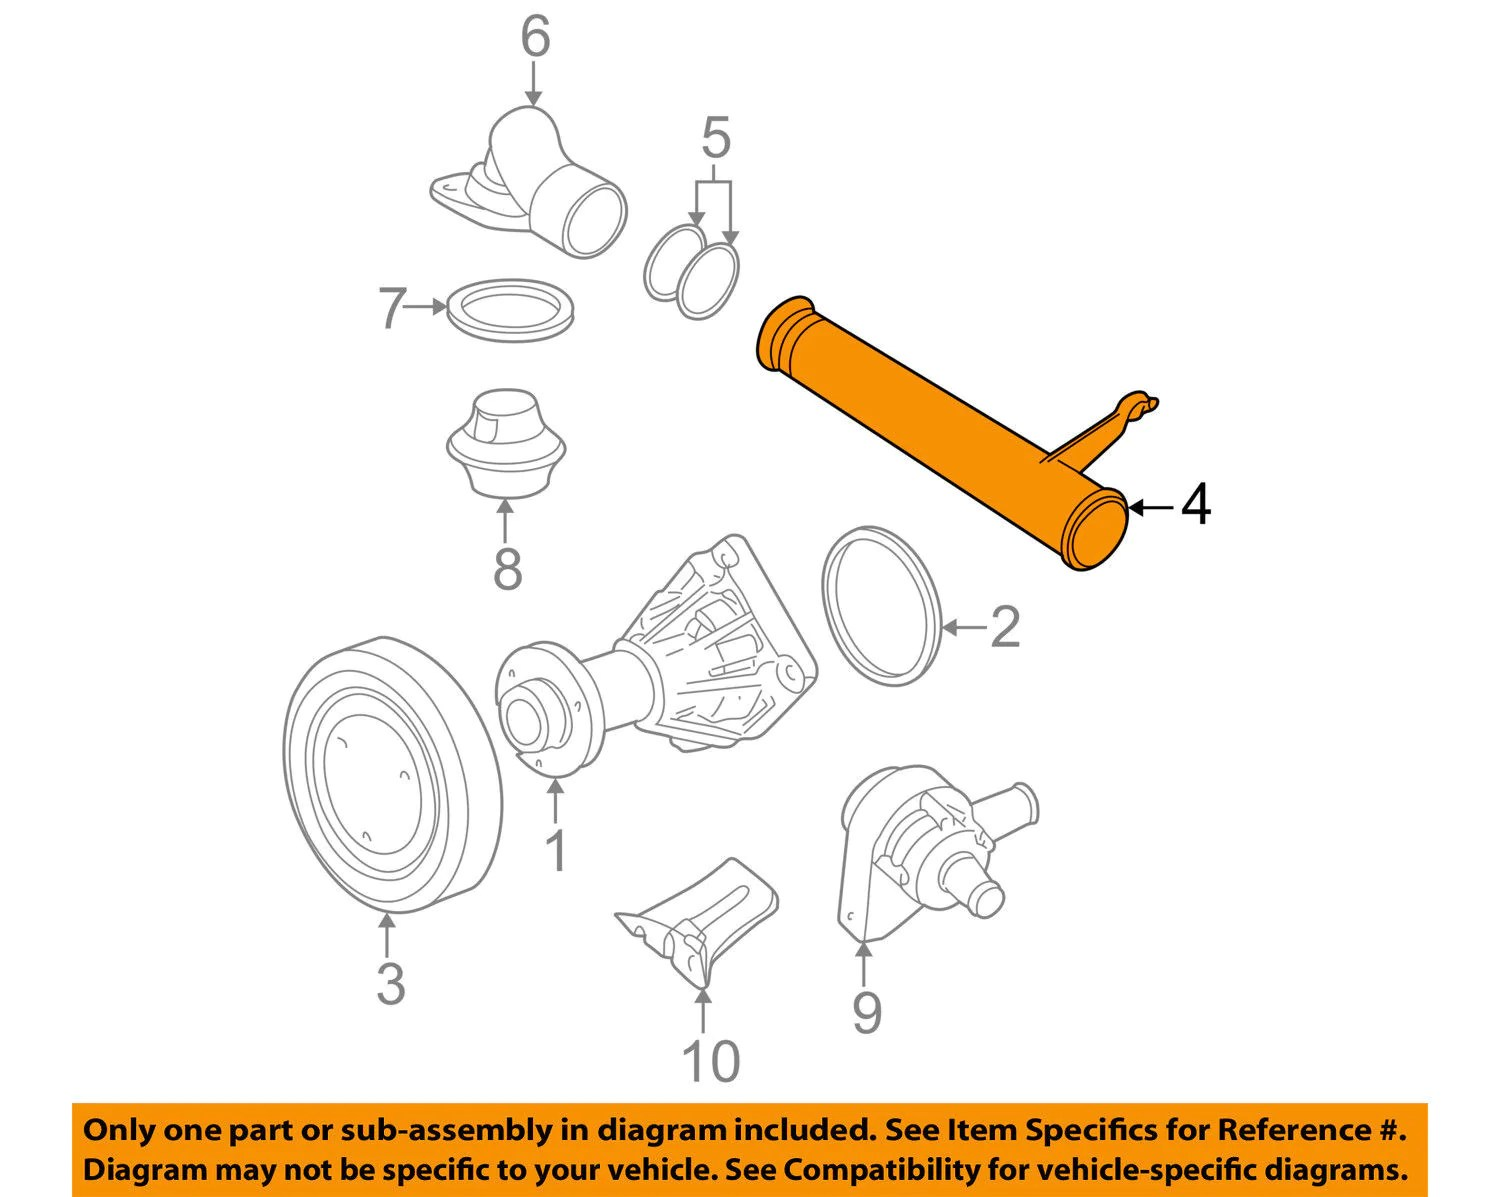 cadillac catera cts saturn vue l ls lw series thermostat housing tube  [ 1500 x 1197 Pixel ]